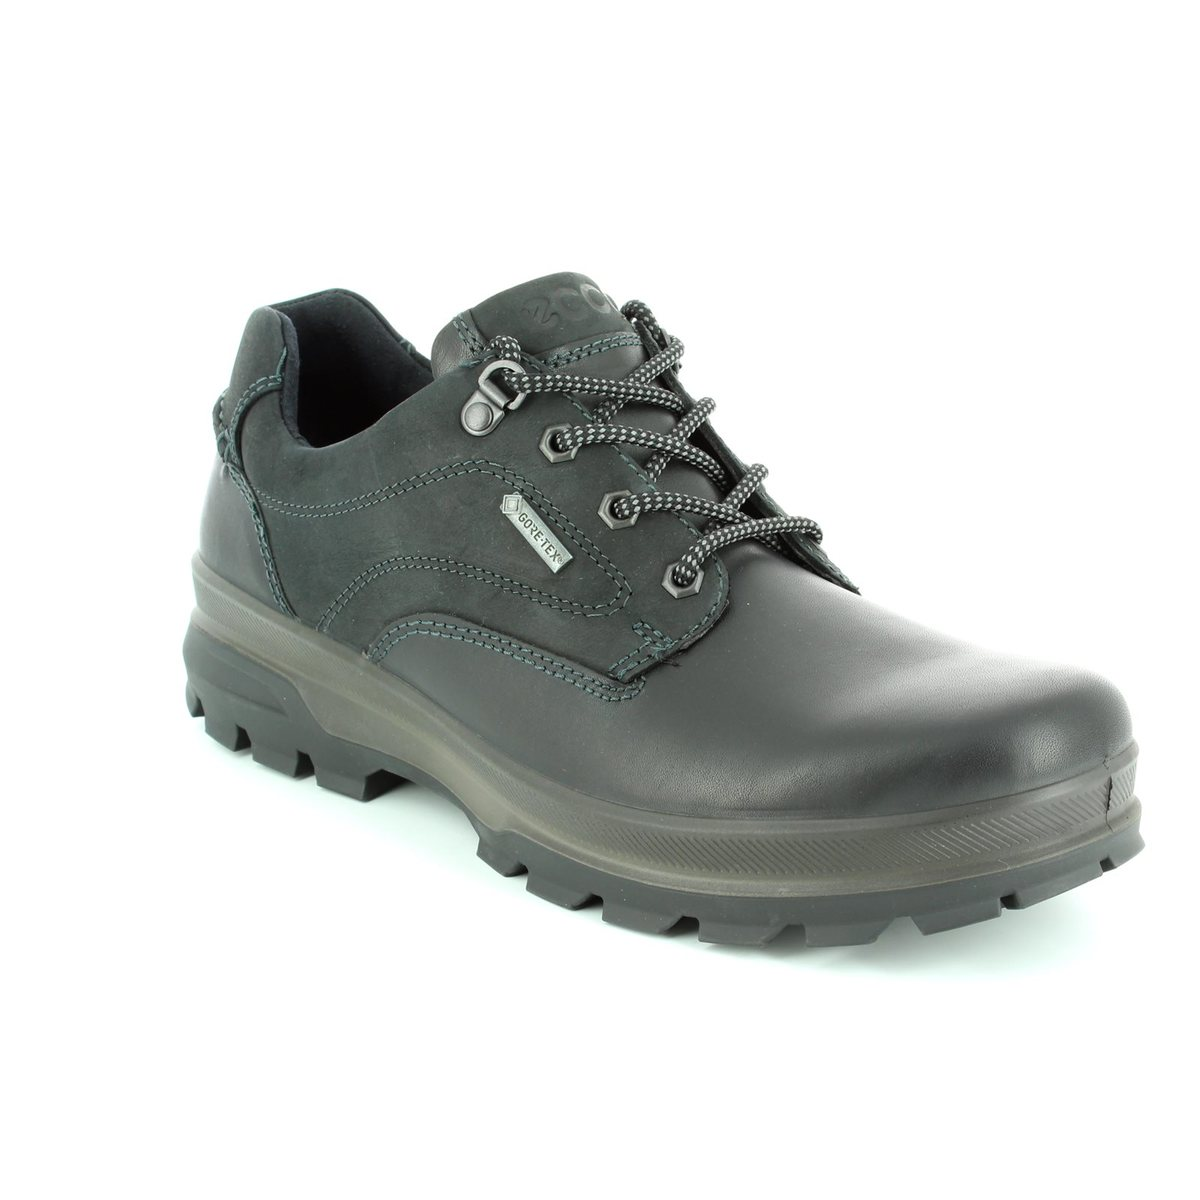 e905a74cd40 838034/51707 Rugged Gore-tex at Begg Shoes & Bags